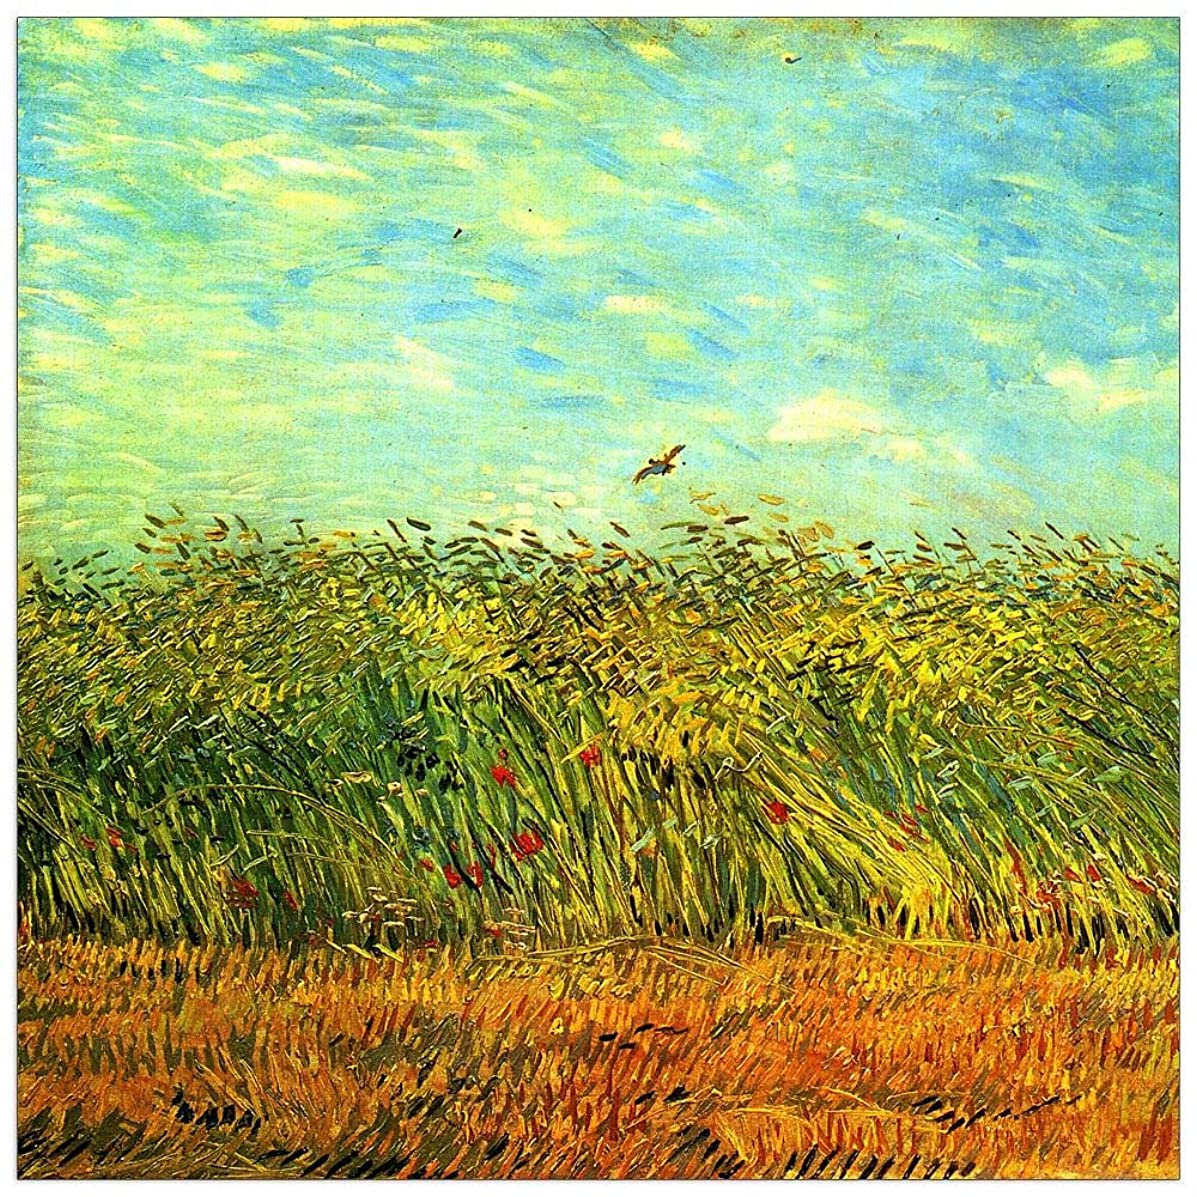 ArtPlaza TW91002 Van Gogh Vincent - Wheat Field with a Lark Decorative Panel 31.5x31.5 Inch Multicolored